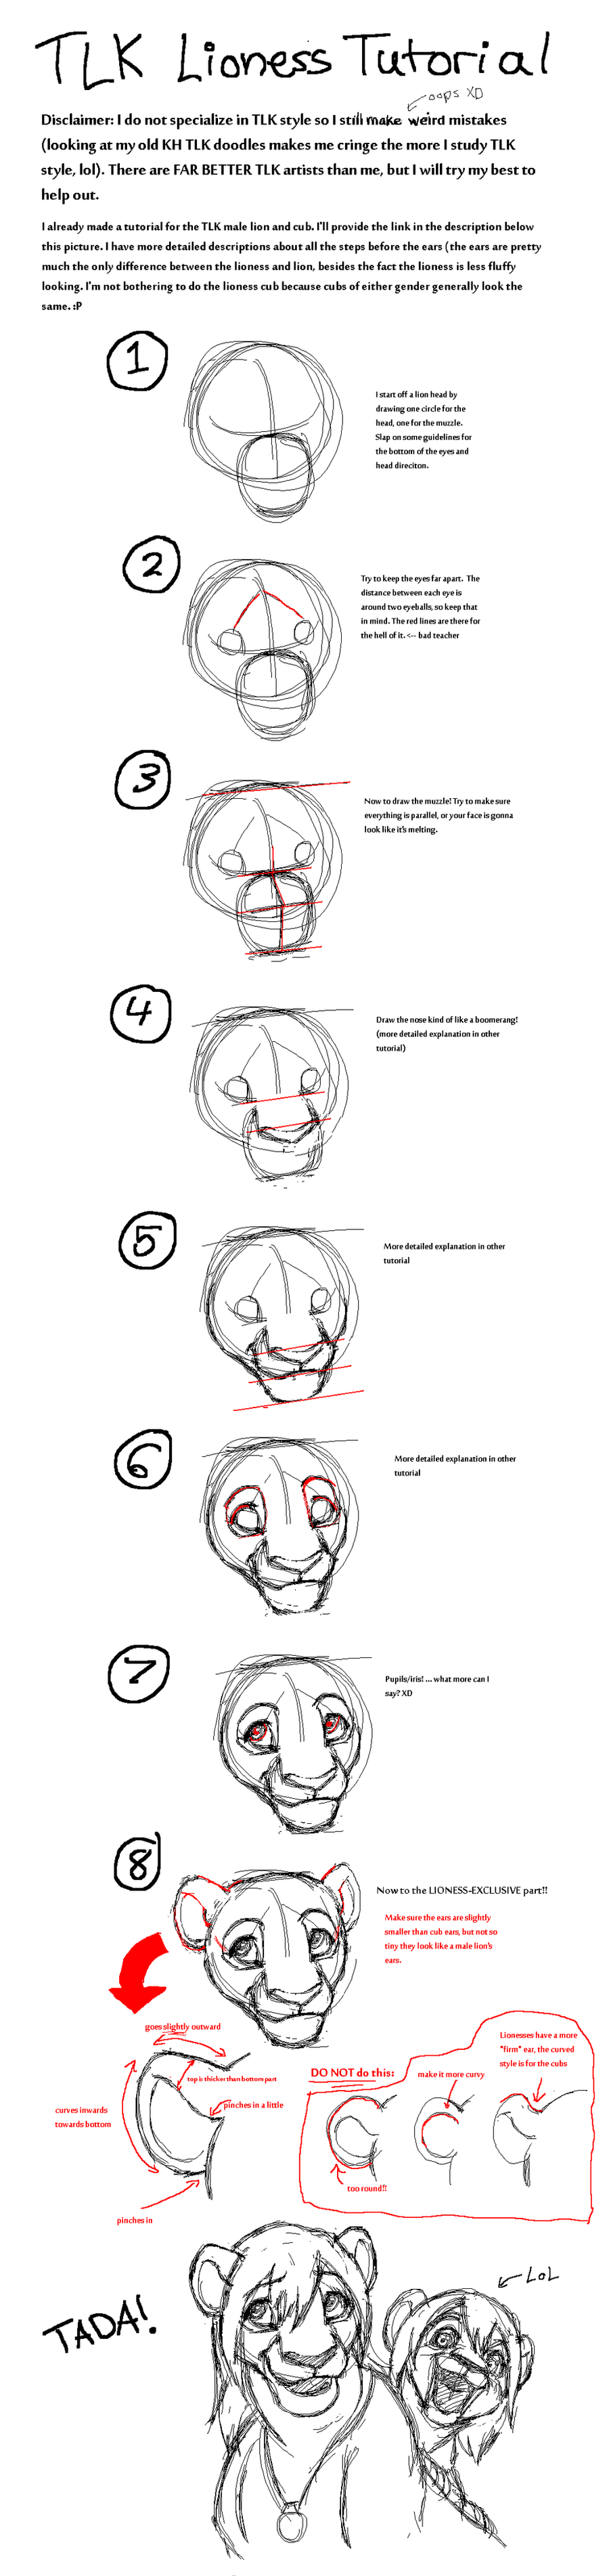 TLK Lioness Face Tutorial by rasenth